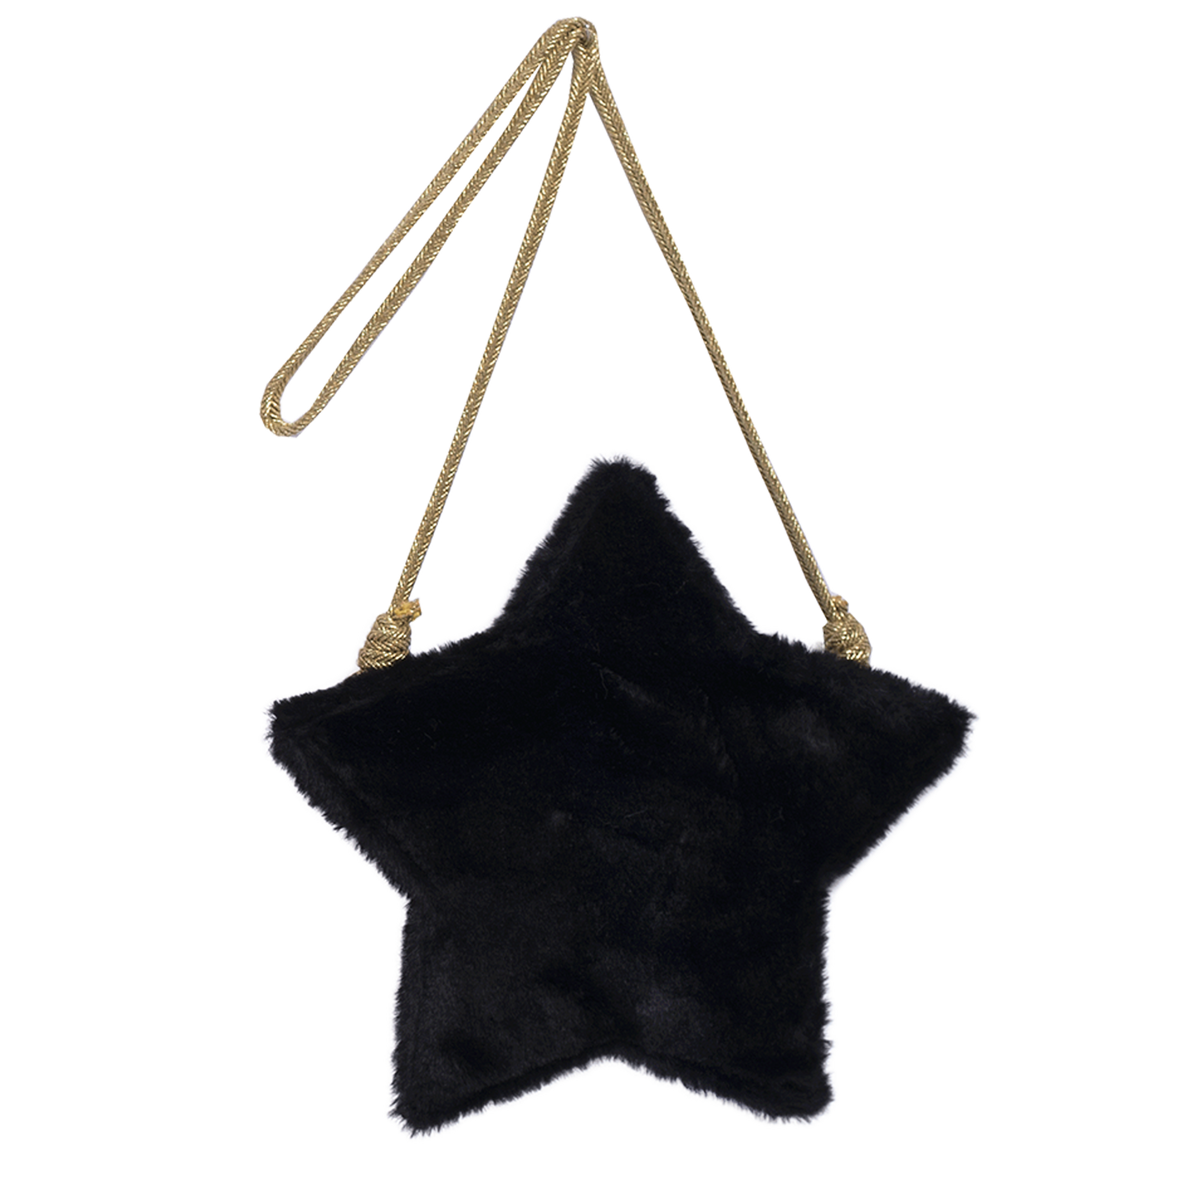 Black faux fur girls purse in the shape of a star with zipper in the back. Strap is made of gold fabric and designed by Imoga.